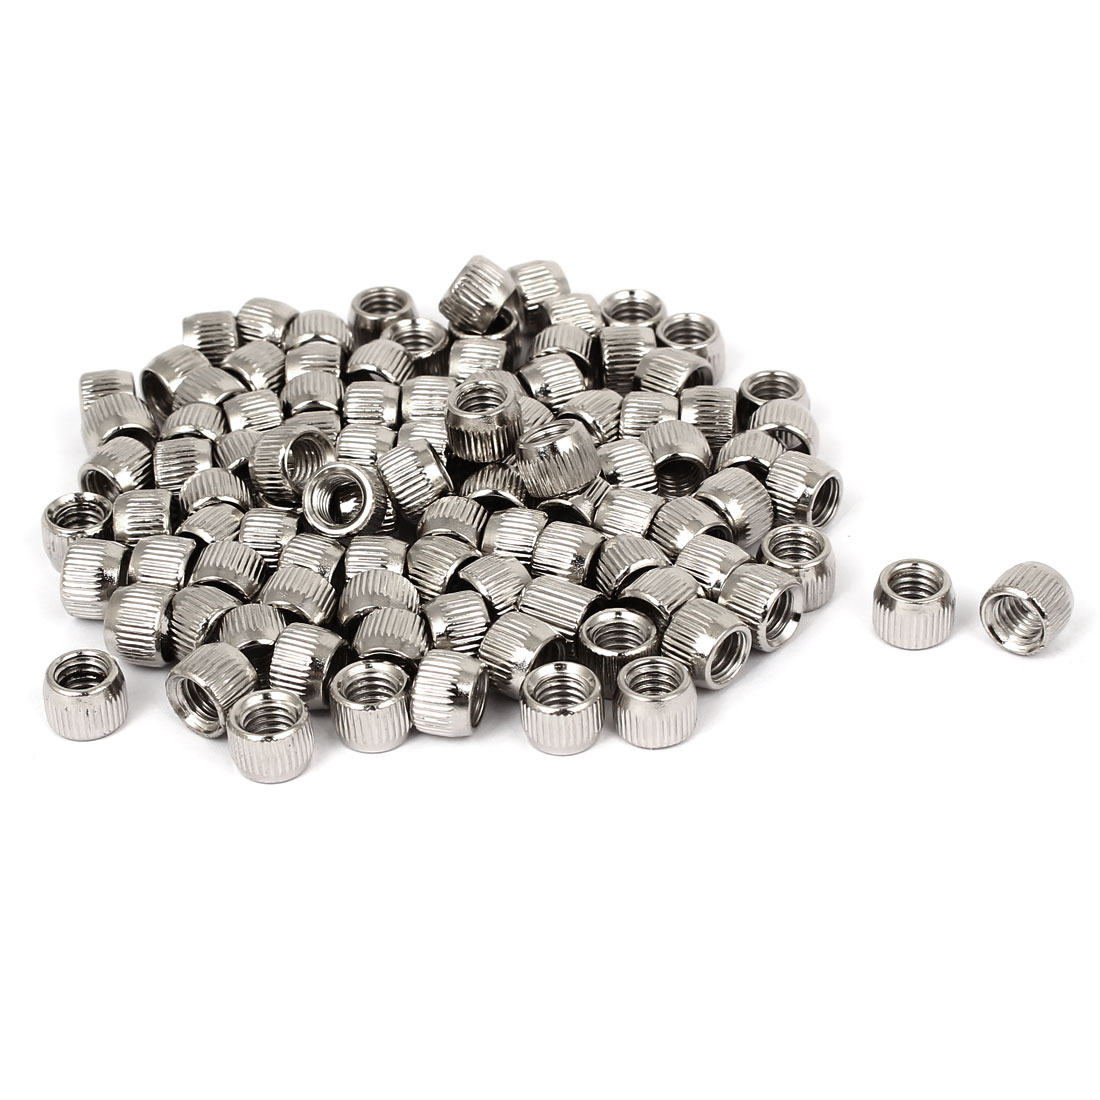 5mm Female Thread Cone Shaped Metal Conical Nut Fastener 100pcs